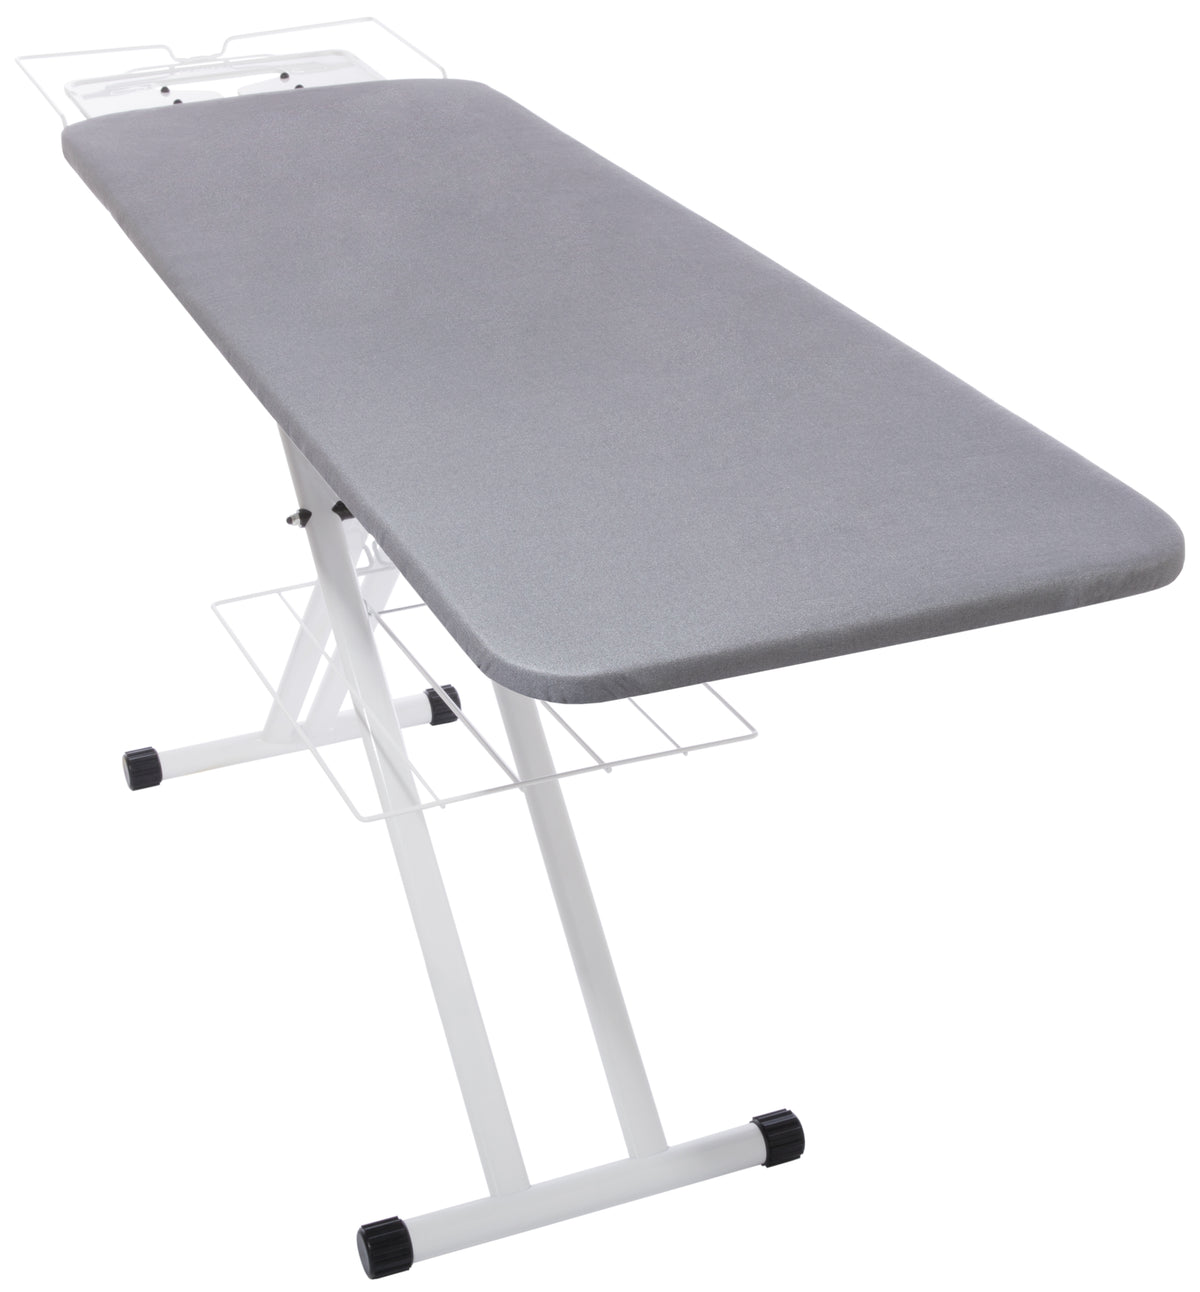 IRONING BOARD COVER MADE FOR RELIABLE 3001B IRONING BOARD